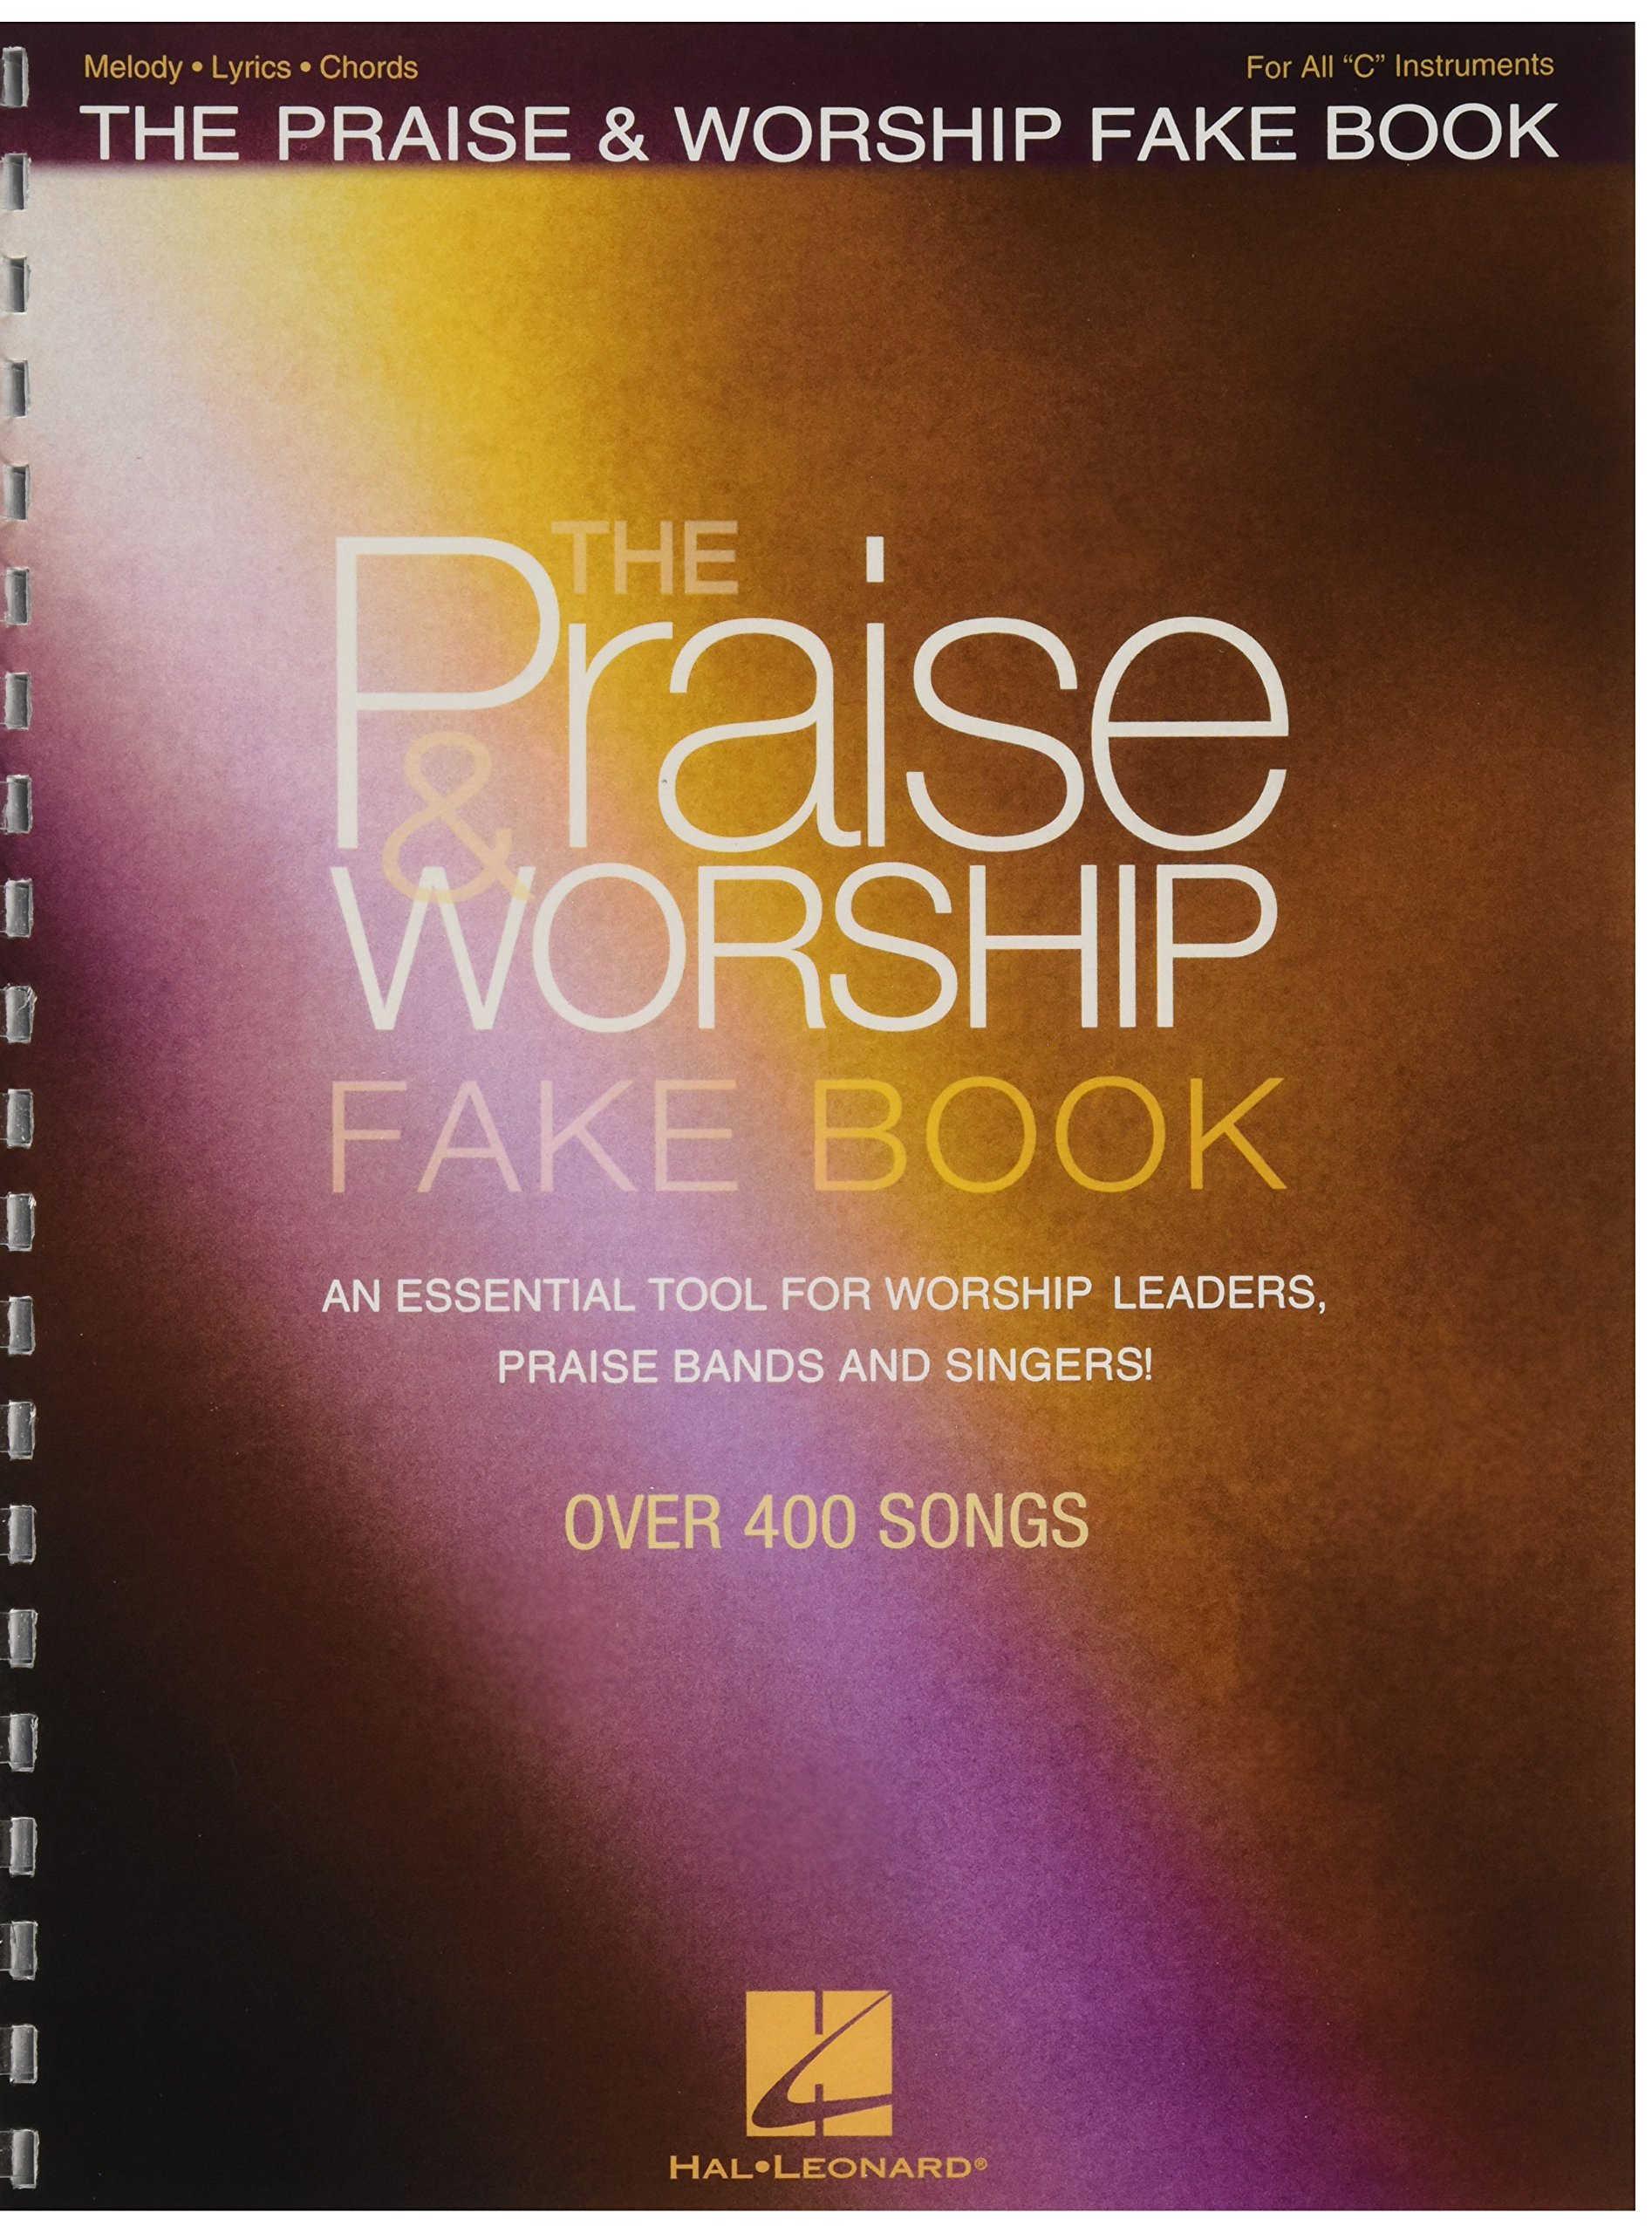 The Praise & Worship Fake Book: An Essential Tool for Worship